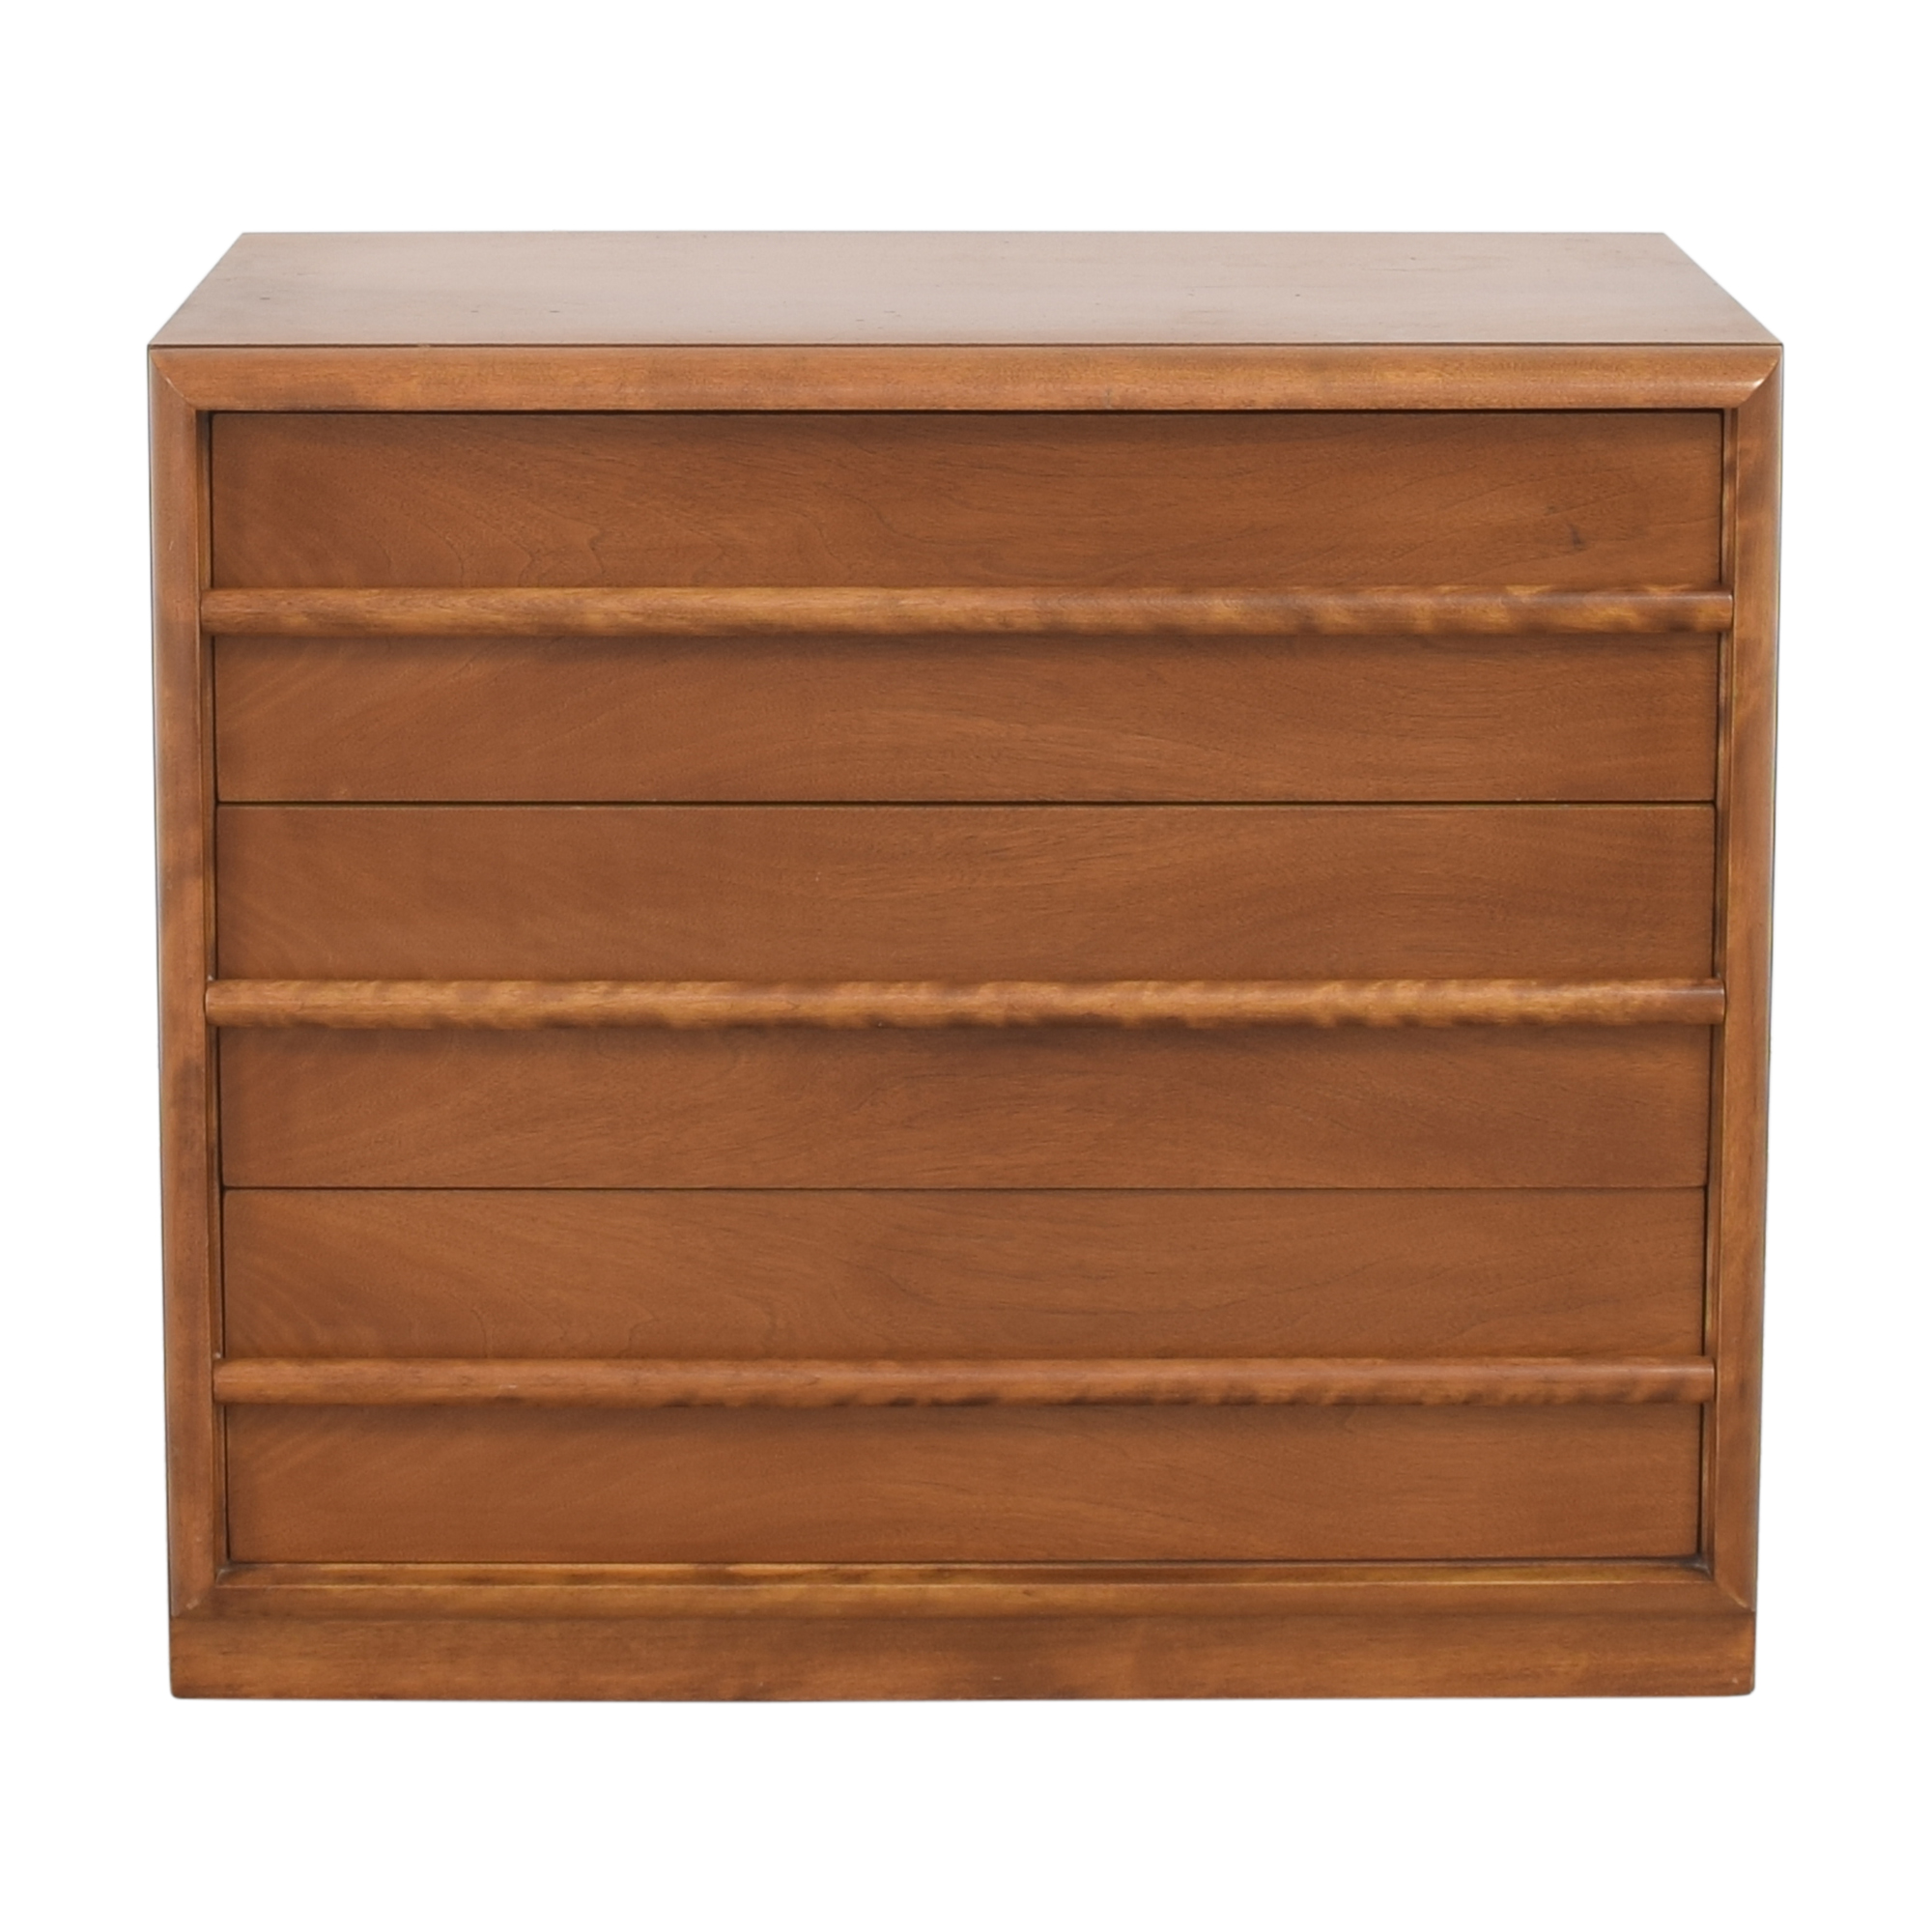 buy T.H. Robsjohn Gibbings for Widdicomb Mid-Century Bachelor Chest John Widdicomb Co.